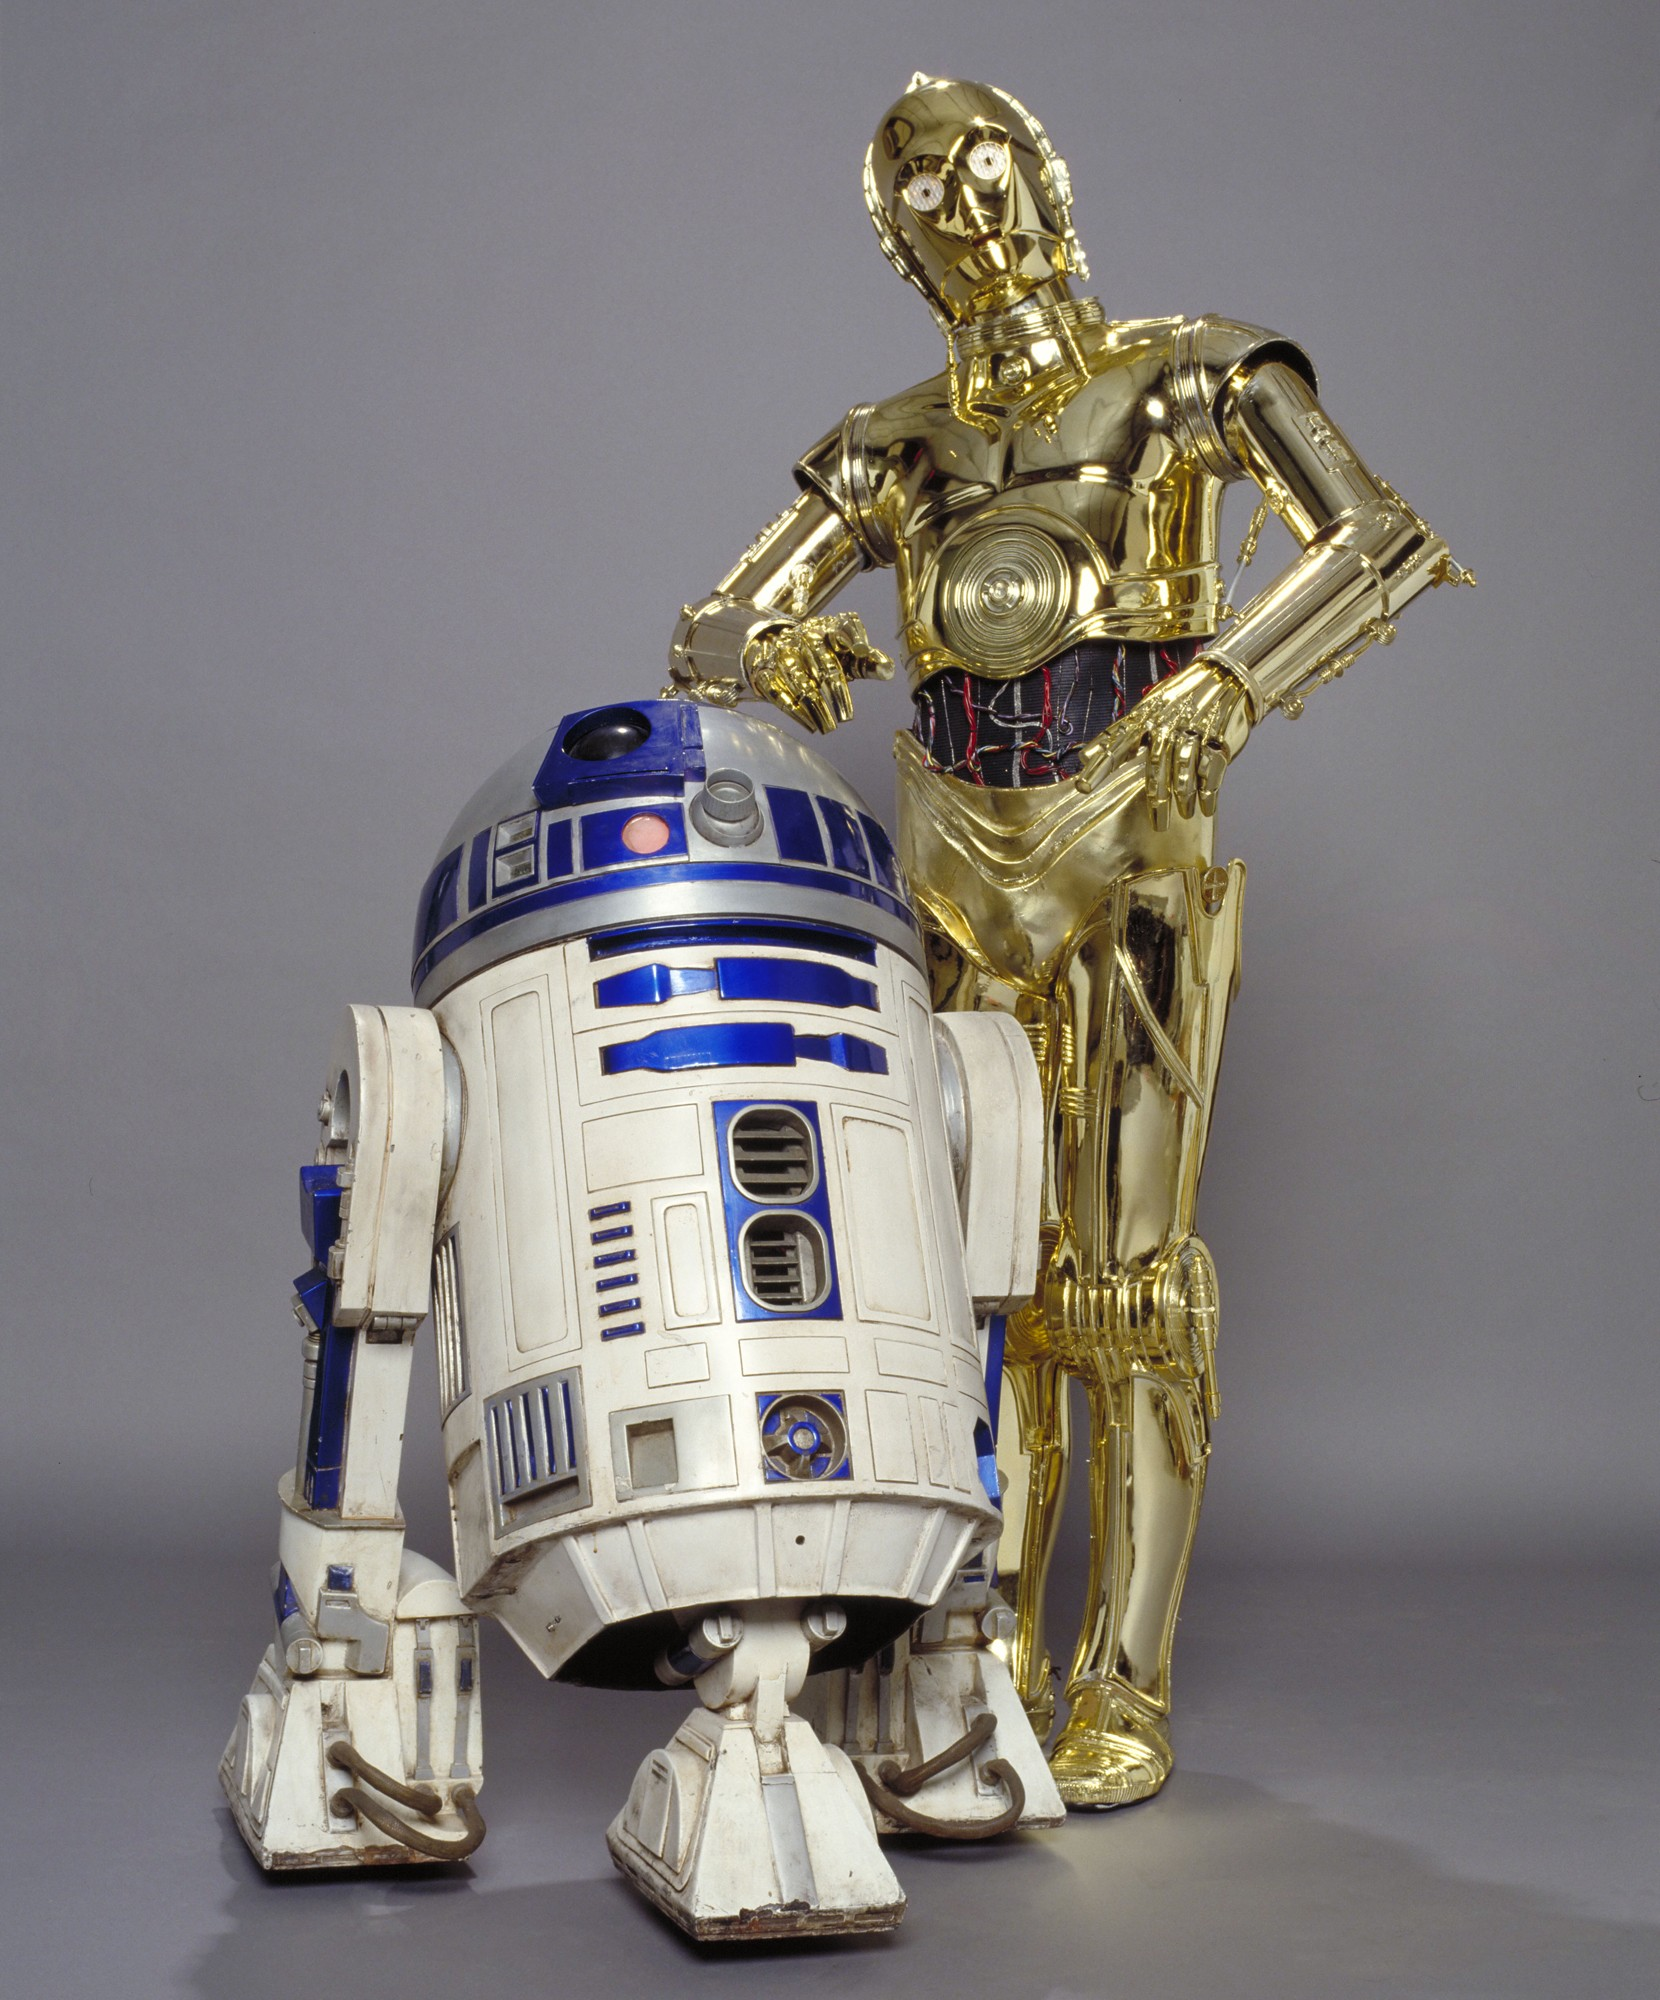 Customer Service Droids would be pretty cool, actually.